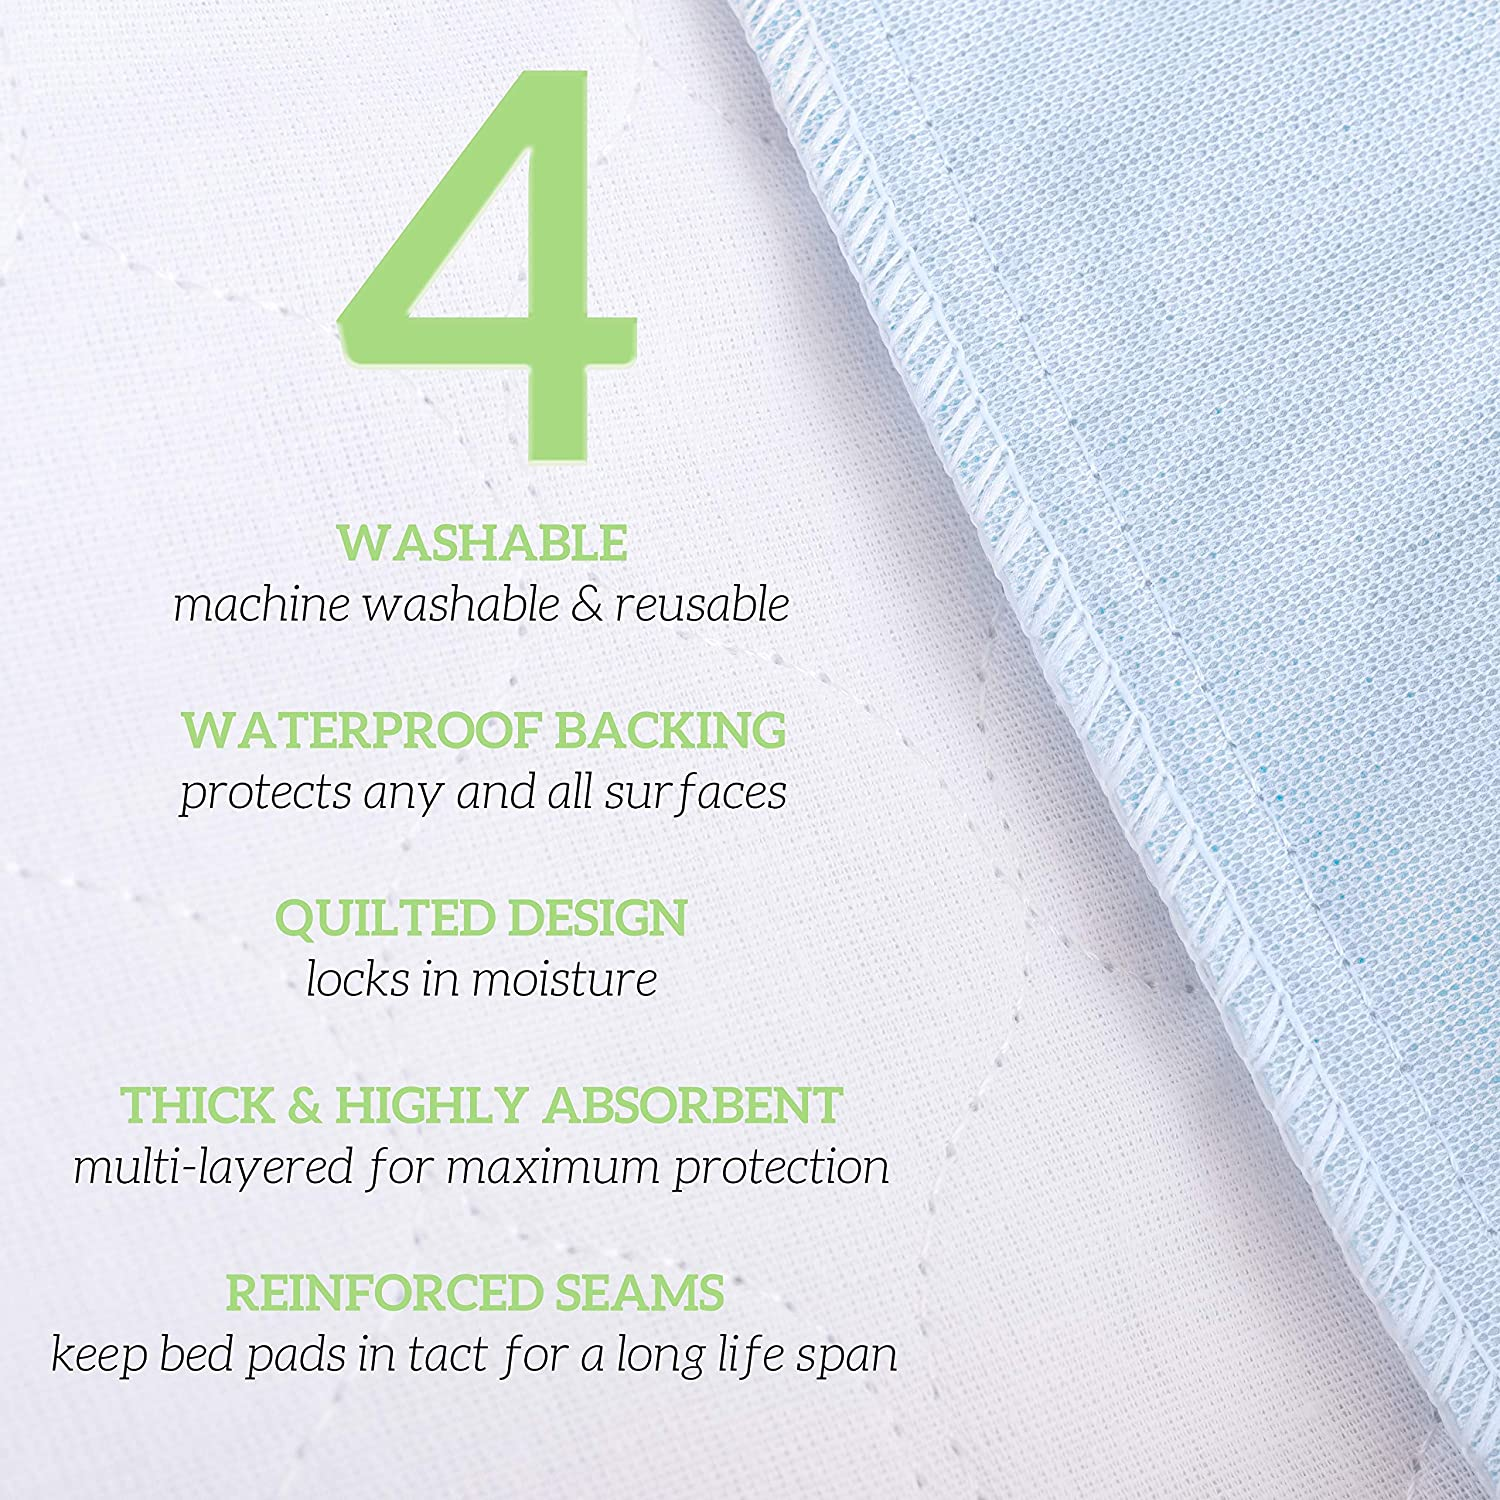 Cats 34 x 36 Bunny /& Seniors by Green Lifestyle Reusable pet Pads Washable Underpads 4 Pack 34x36 for use as Incontinence Bed Pads Pack of 4 Large Bed Pads Great for Dogs